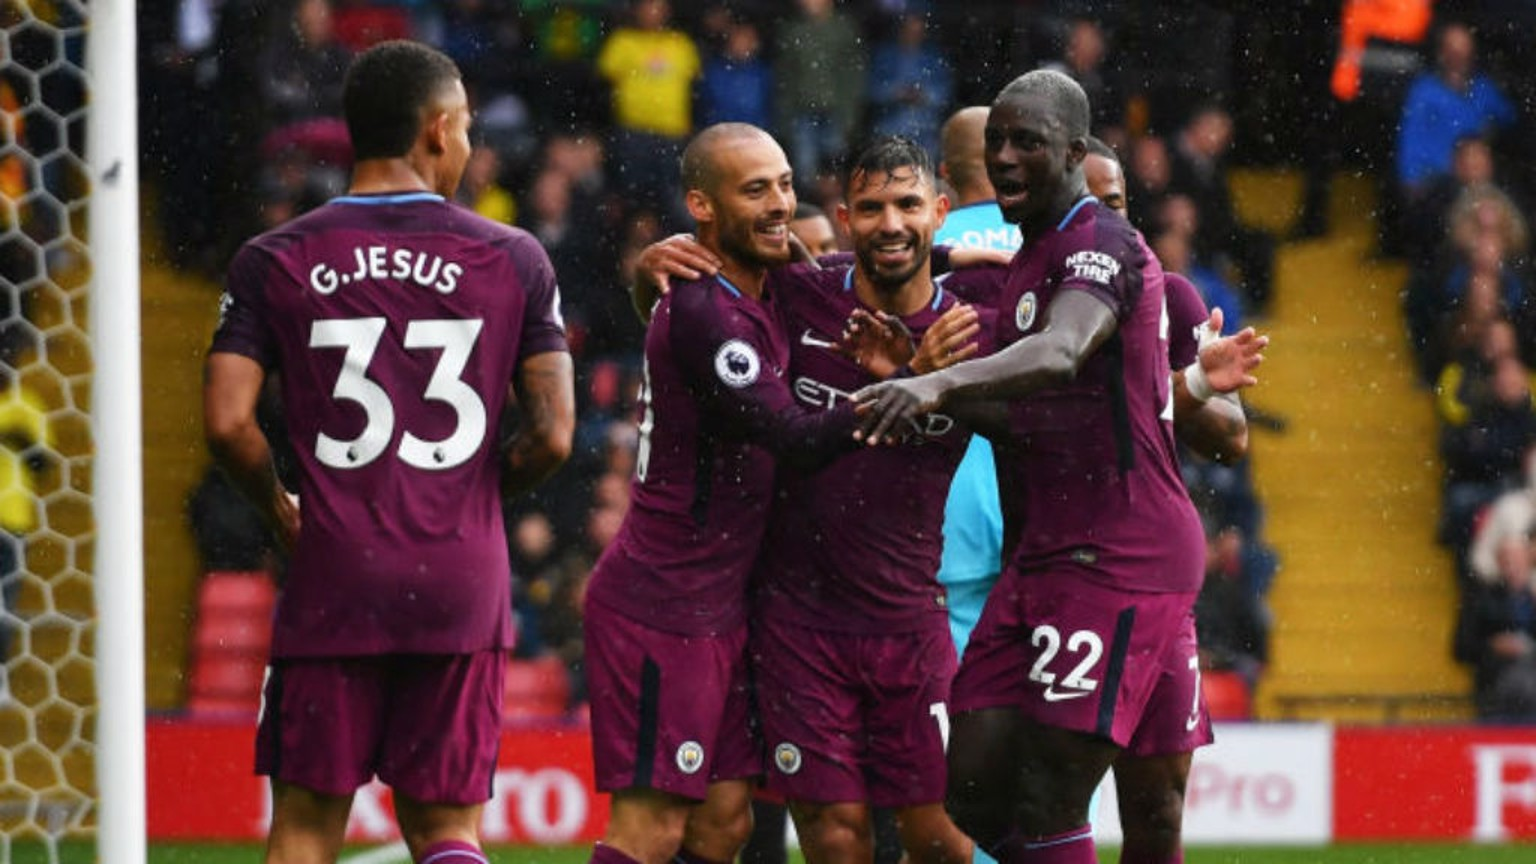 SMILING ASSASSIN: Sergio Aguero is mobbed by his City team-mates